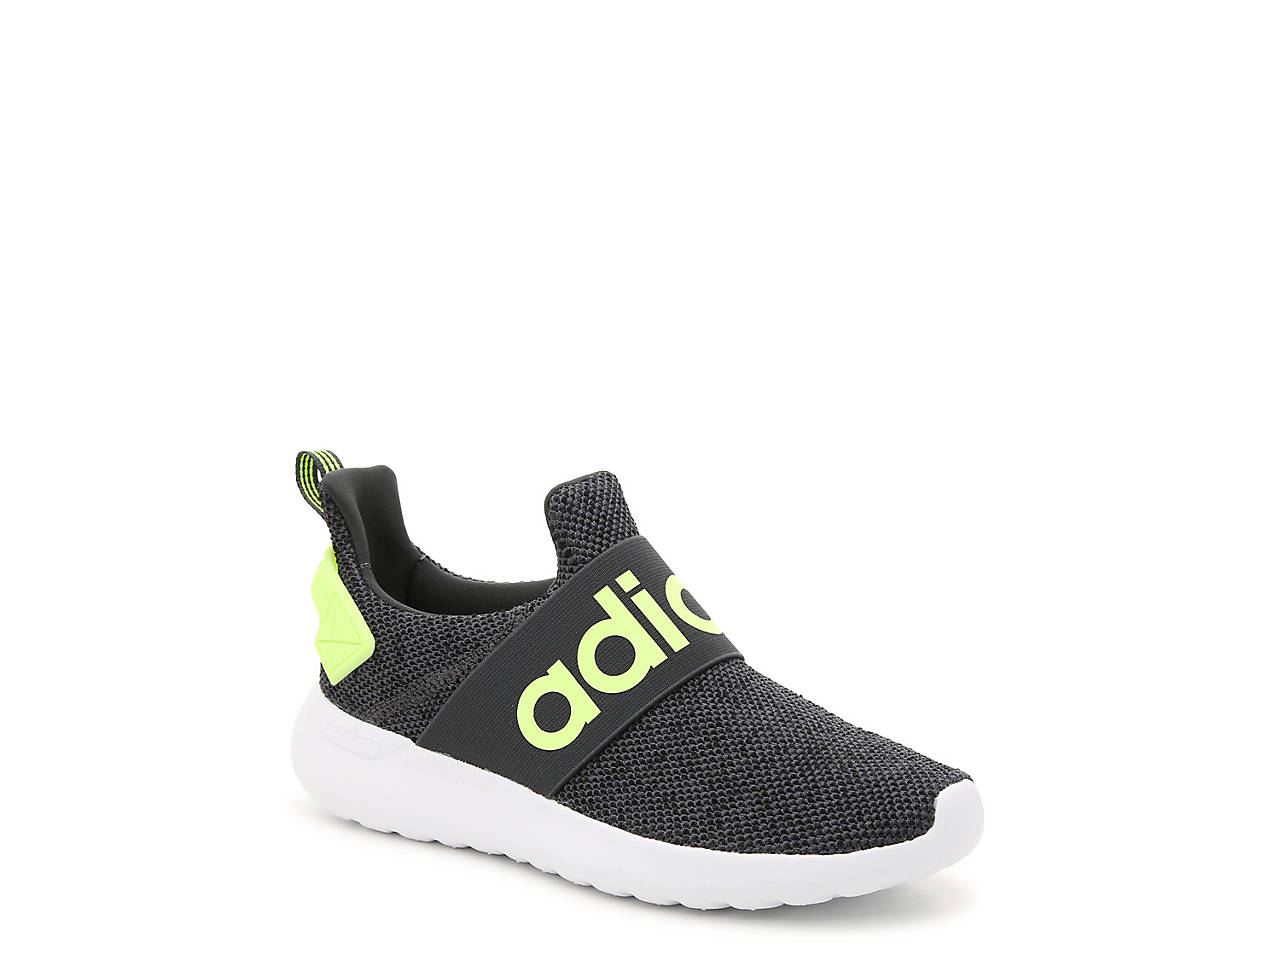 Girls' Adidas Little Kid & Big Kid Lite Racer Adapt Running Shoes